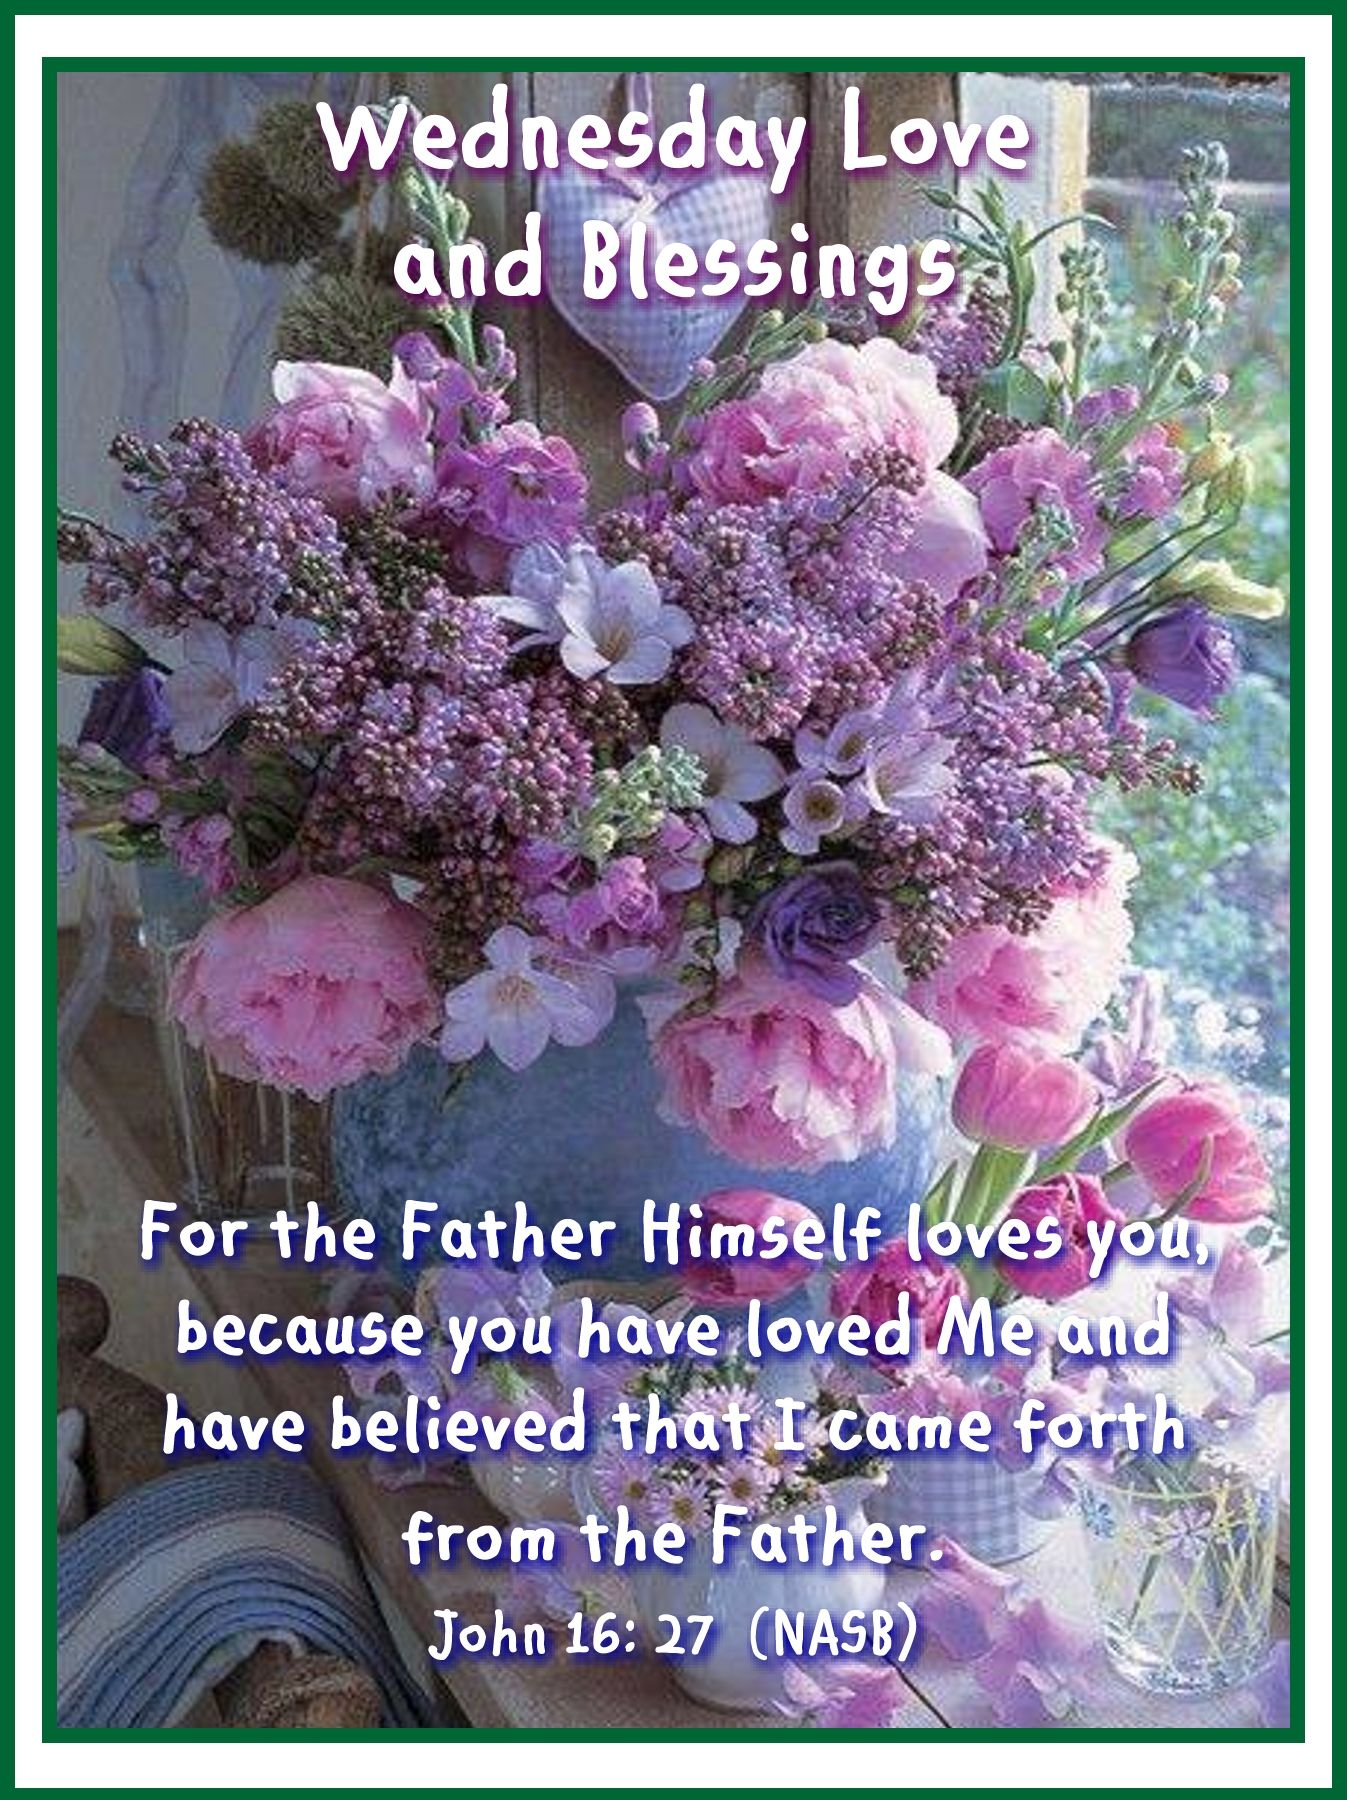 Pin by rosa well on wednesday blessings pinterest wednesday wednesday greetings wednesday morning biblical quotes blessings bible quotes kristyandbryce Images